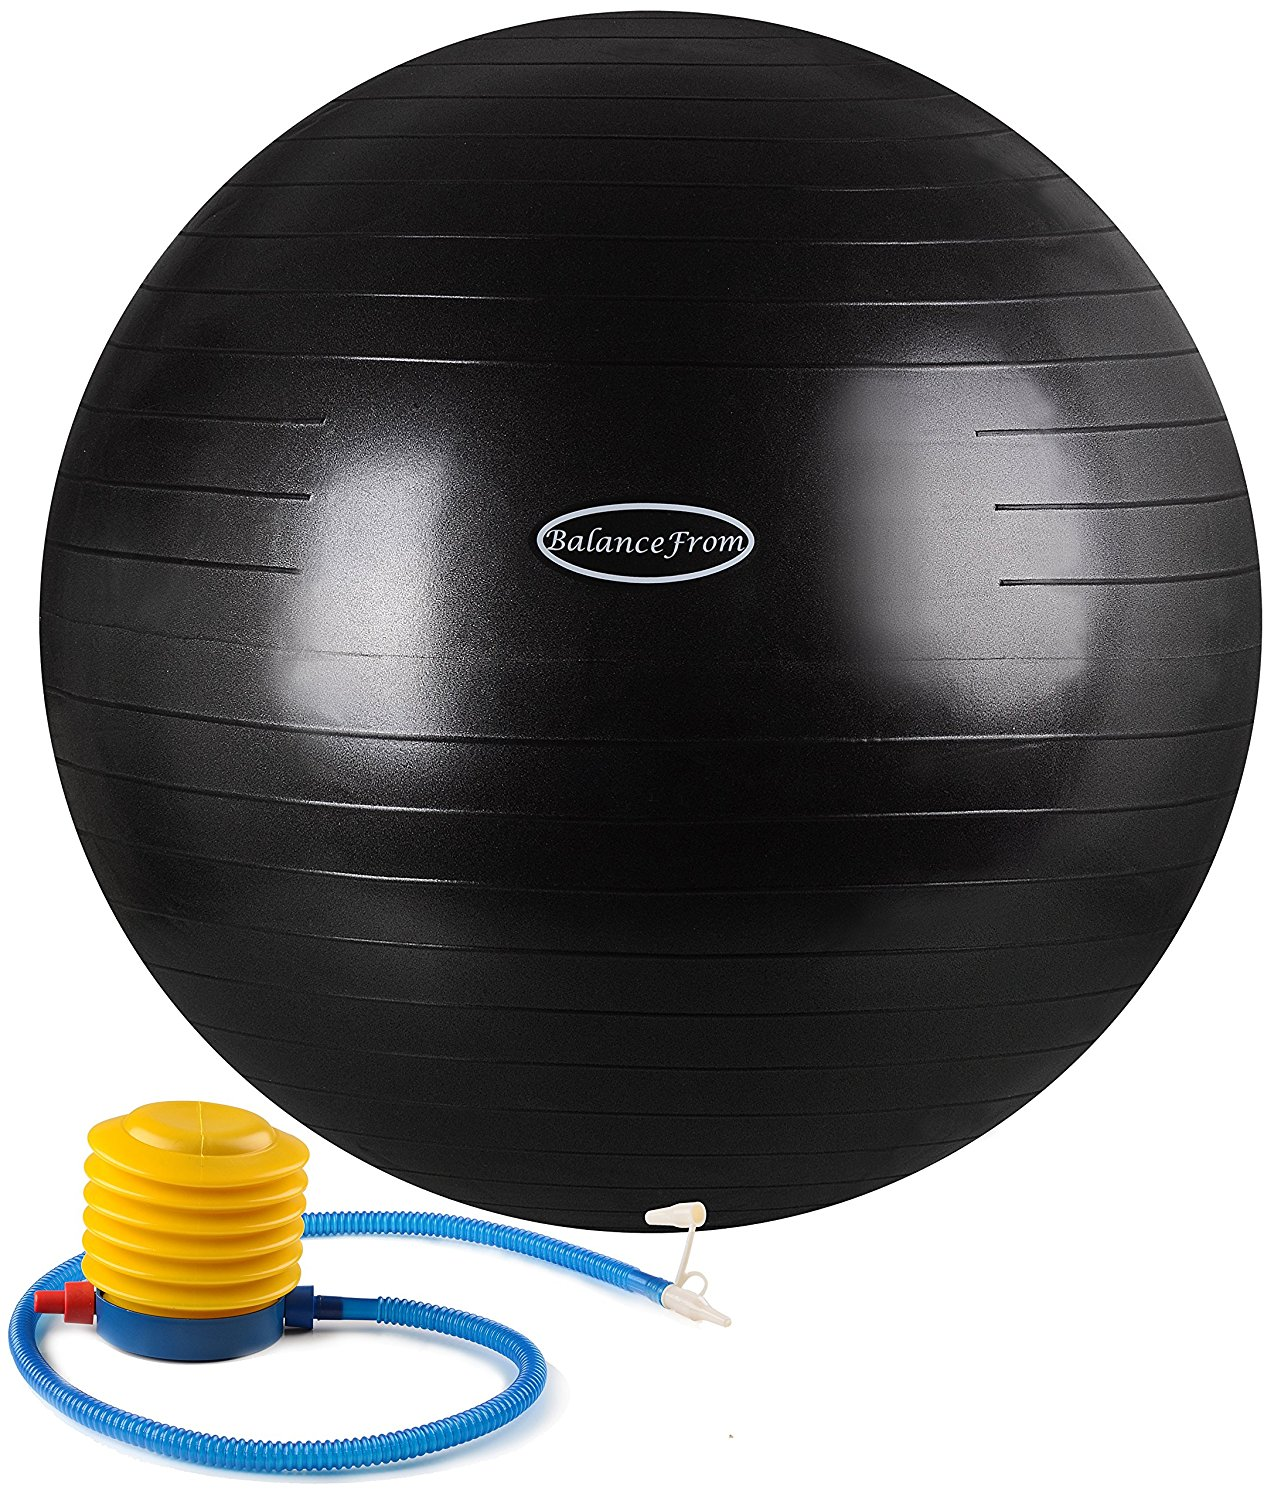 BalanceFrom Anti-Burst and Slip Resistant Fitness Ball with Pump